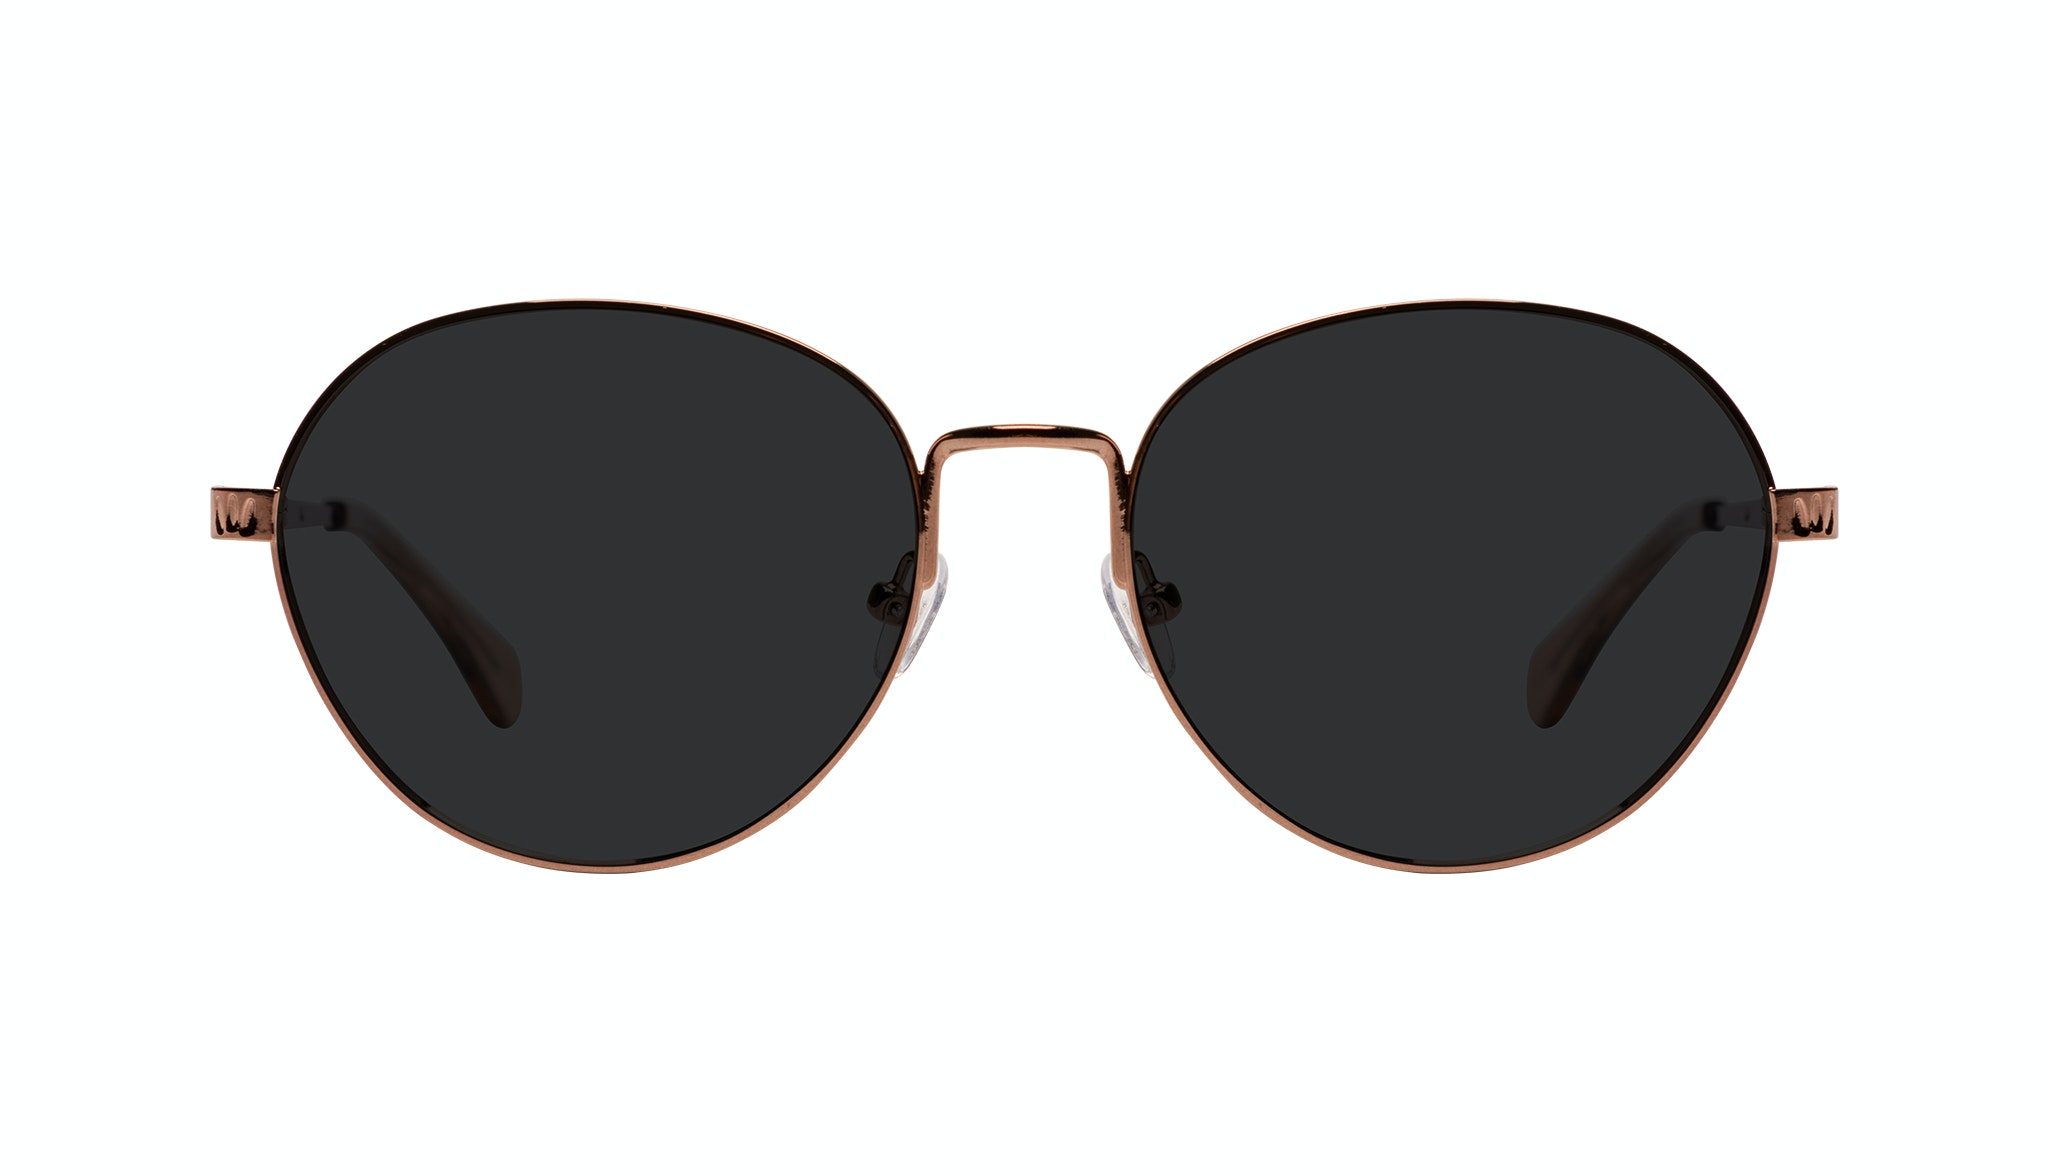 Affordable Fashion Glasses Round Sunglasses Women Brace Plus Rose Gold Front